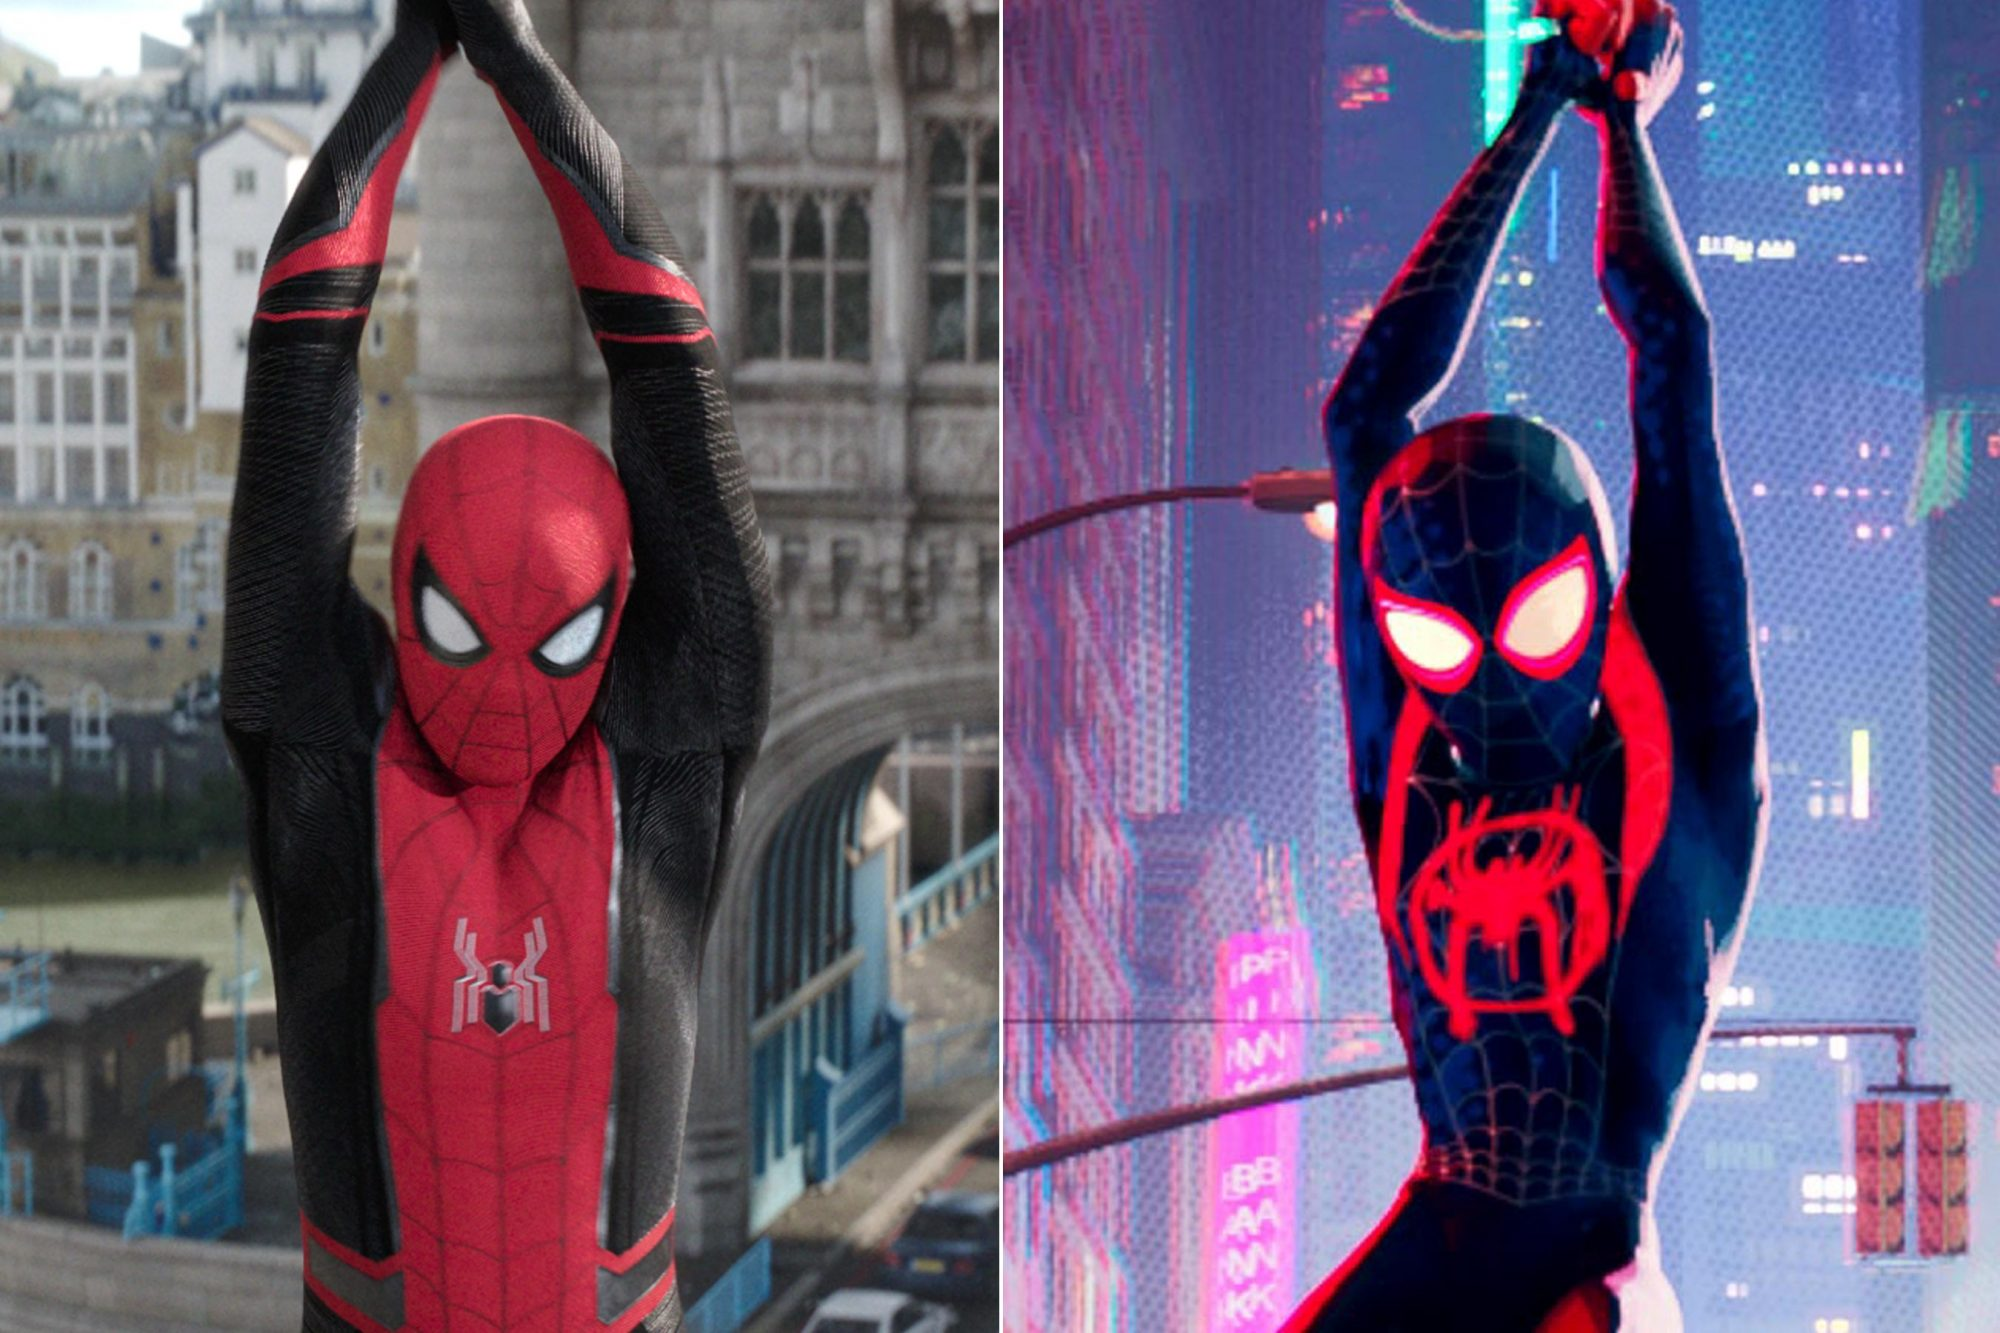 Spider-Man in Columbia Pictures' SPIDER-MAN: ™ FAR FROM HOME Miles Morales (Shameik Moore) Columbia Pictures and Sony Pictures Animation's SPIDER-MAN: INTO THE SPIDER-VERSE.